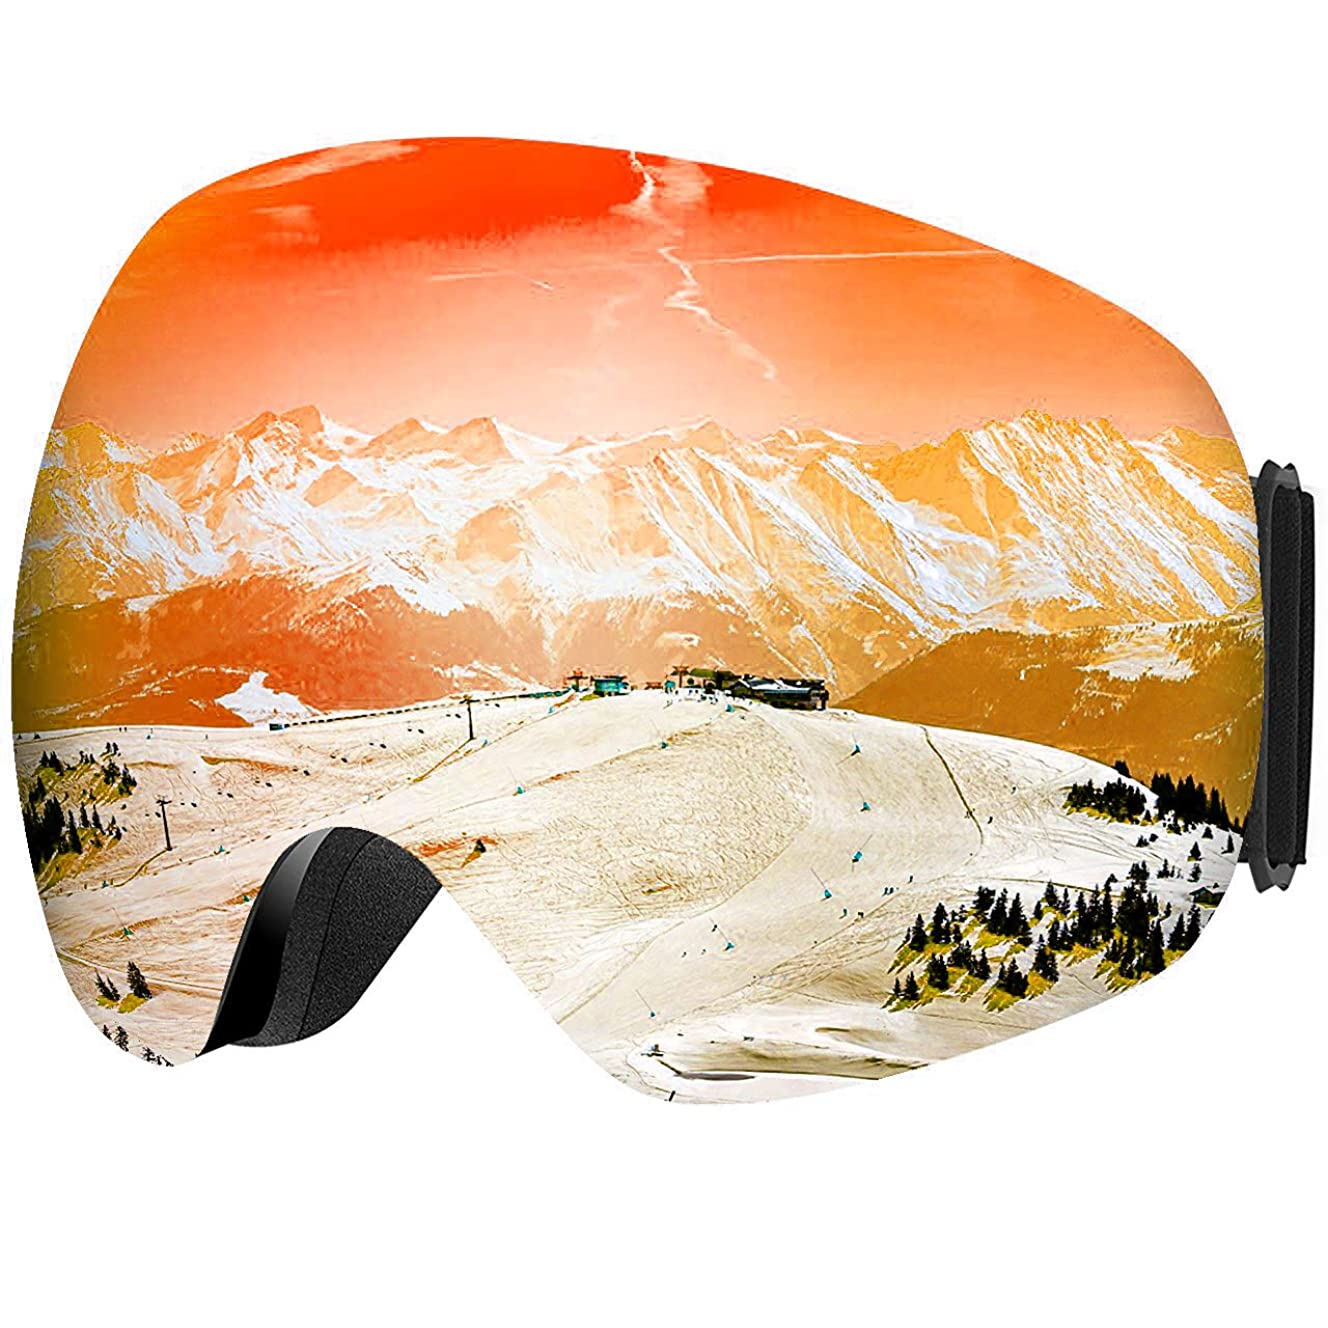 Mpow G-2 Ski Goggles, Windproof Snowboard Goggles for Men Women Youth, VLT 18.5% Snow Goggles with Anti-Fog Double Lens and UV400 Protection